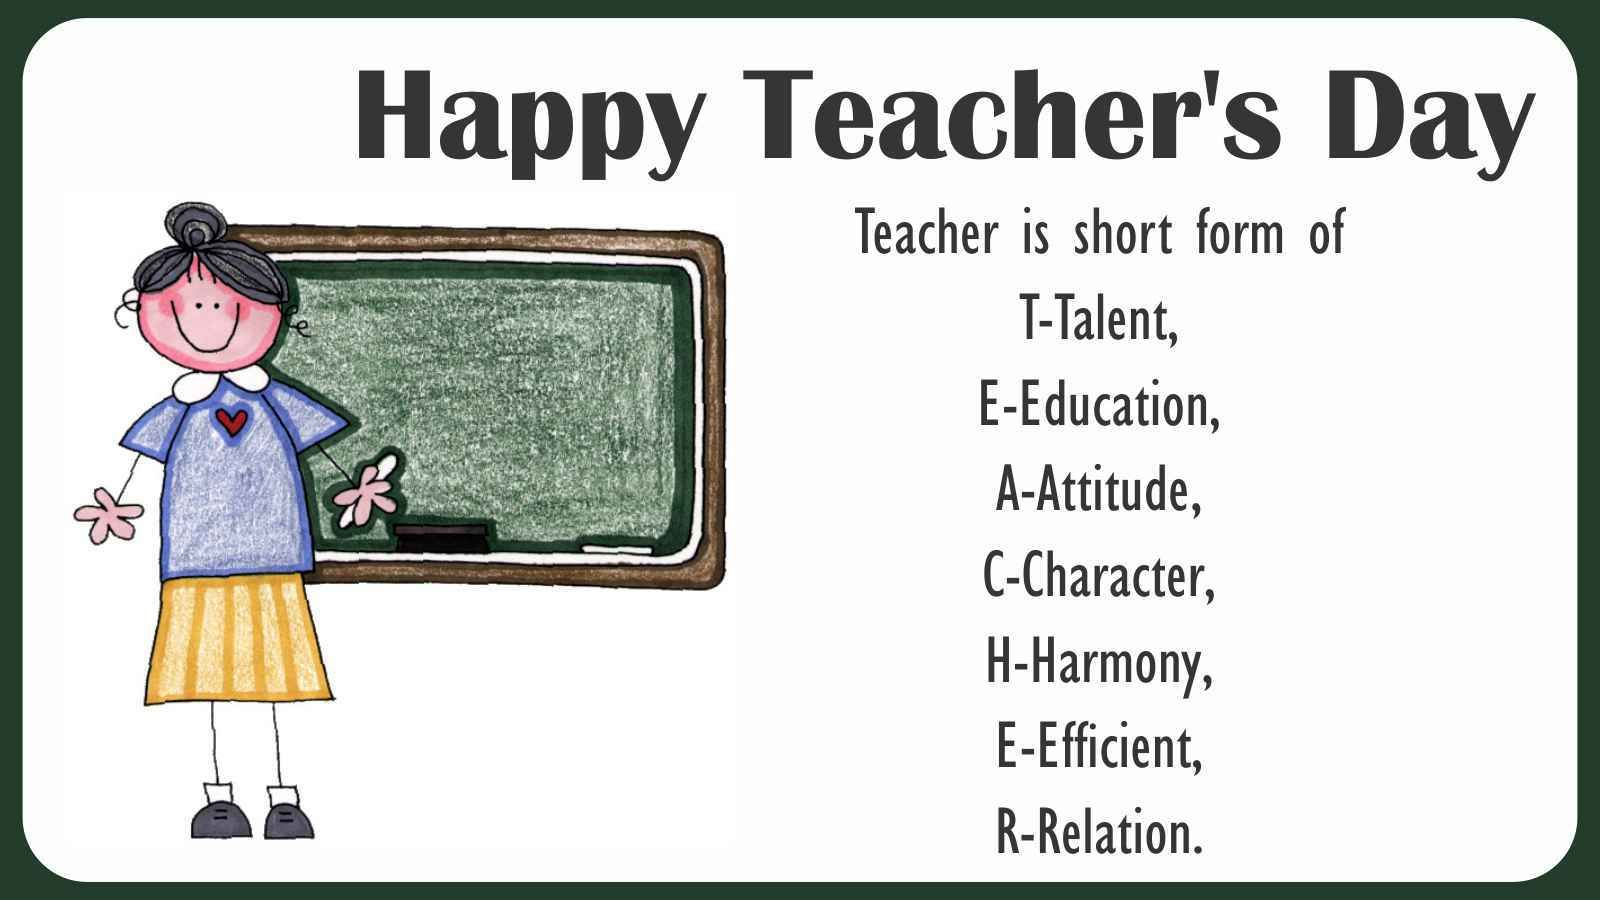 Teachers Day Quotes Sayings Happy Teachers Day Education Quotes For Teachers Teachers Day